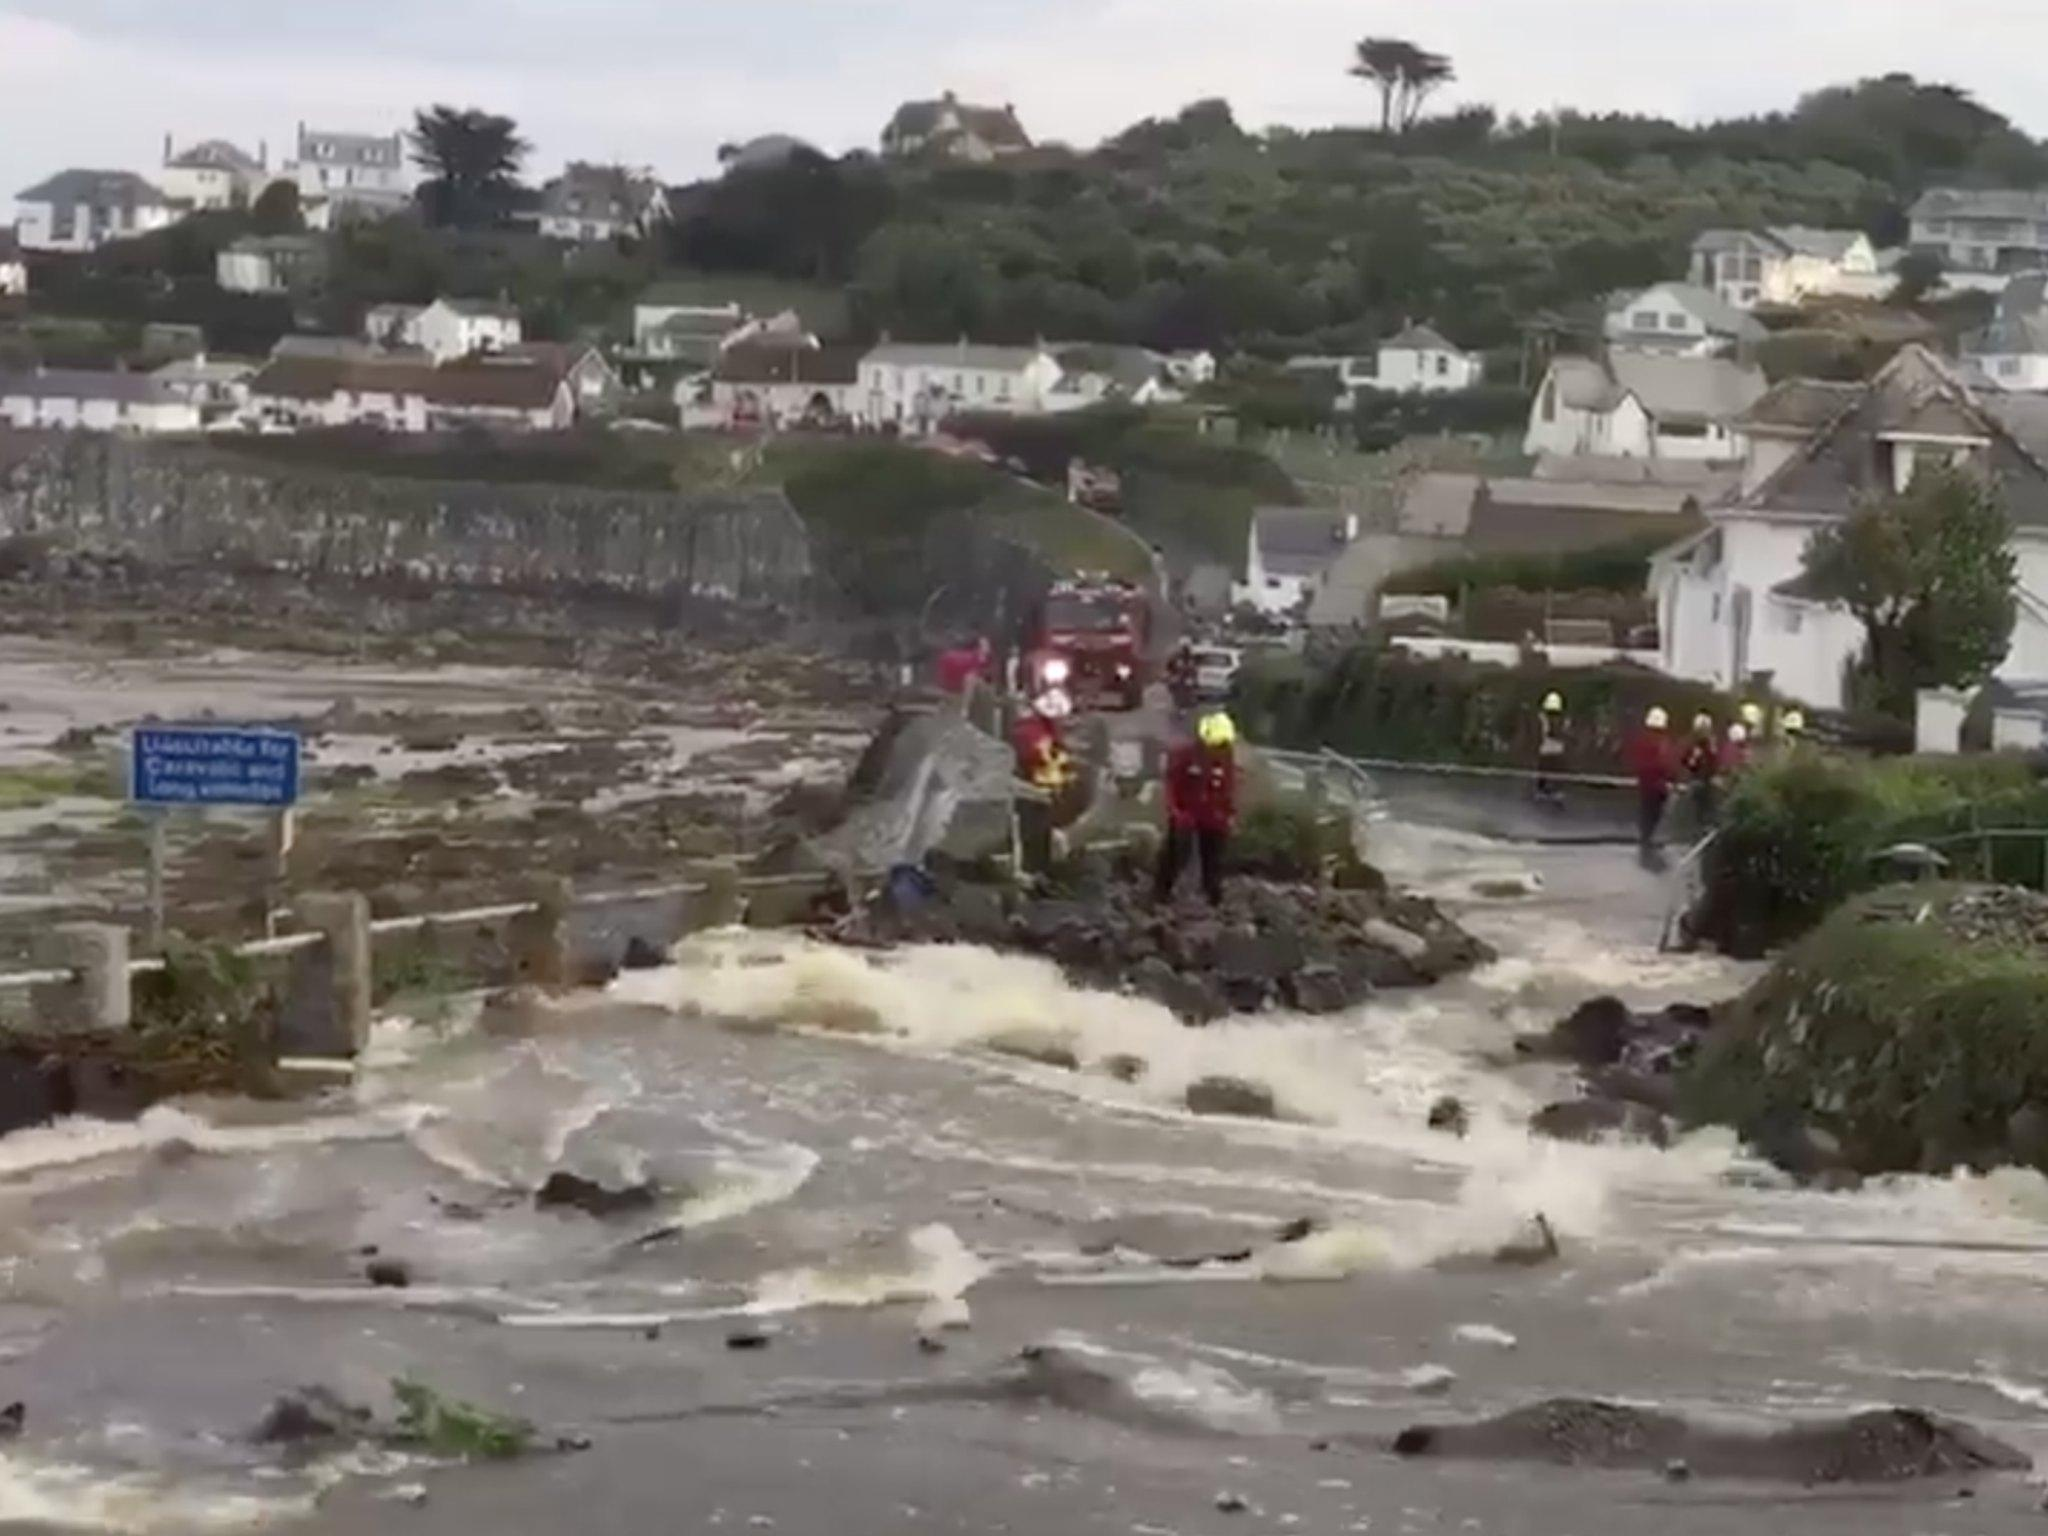 Thumbnail for Cornwall flooding: Massive flash flood hits Cornish village, destroying homes